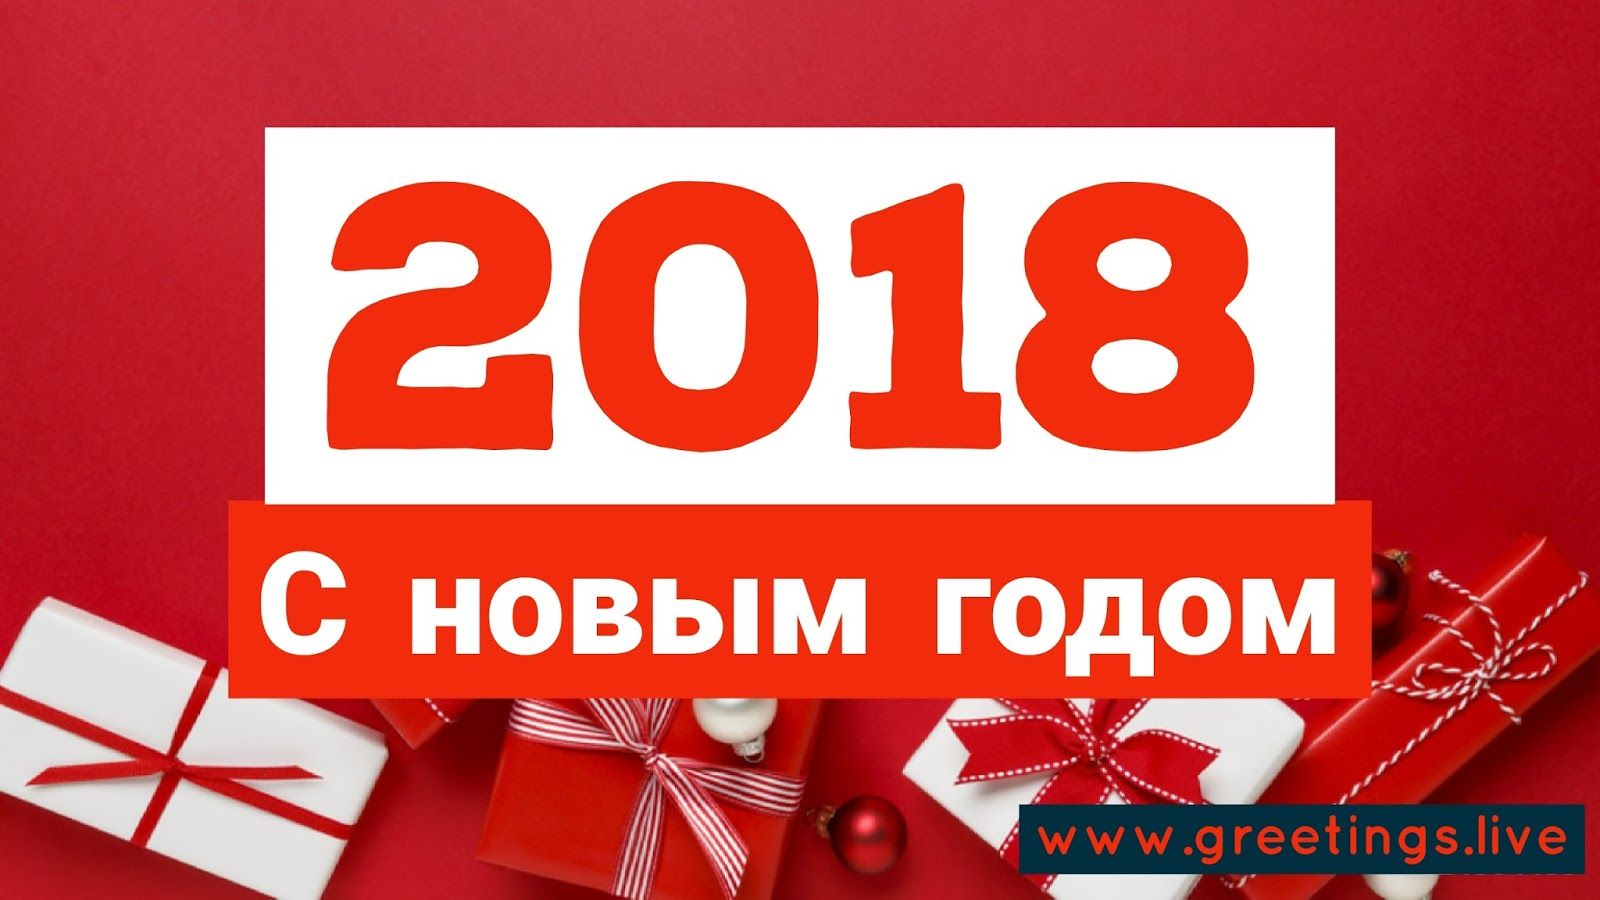 Happy new year 2018 in russian language wishes greetings live happy new year 2018 in russian language wishes kristyandbryce Gallery